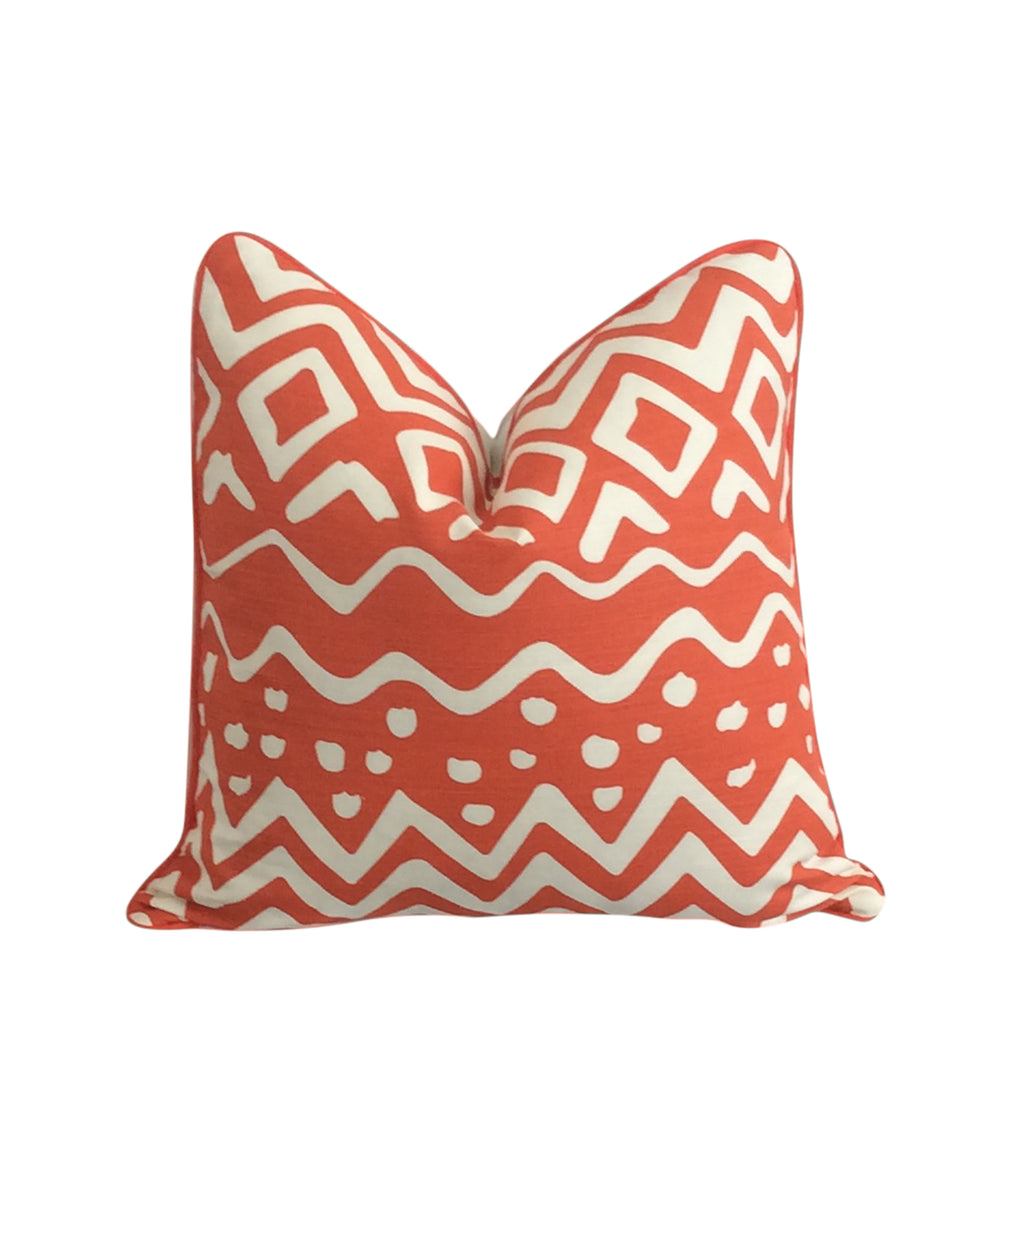 Quadrille China Seas Deauville Orange Designer Pillow Cover by Lilly and Co.